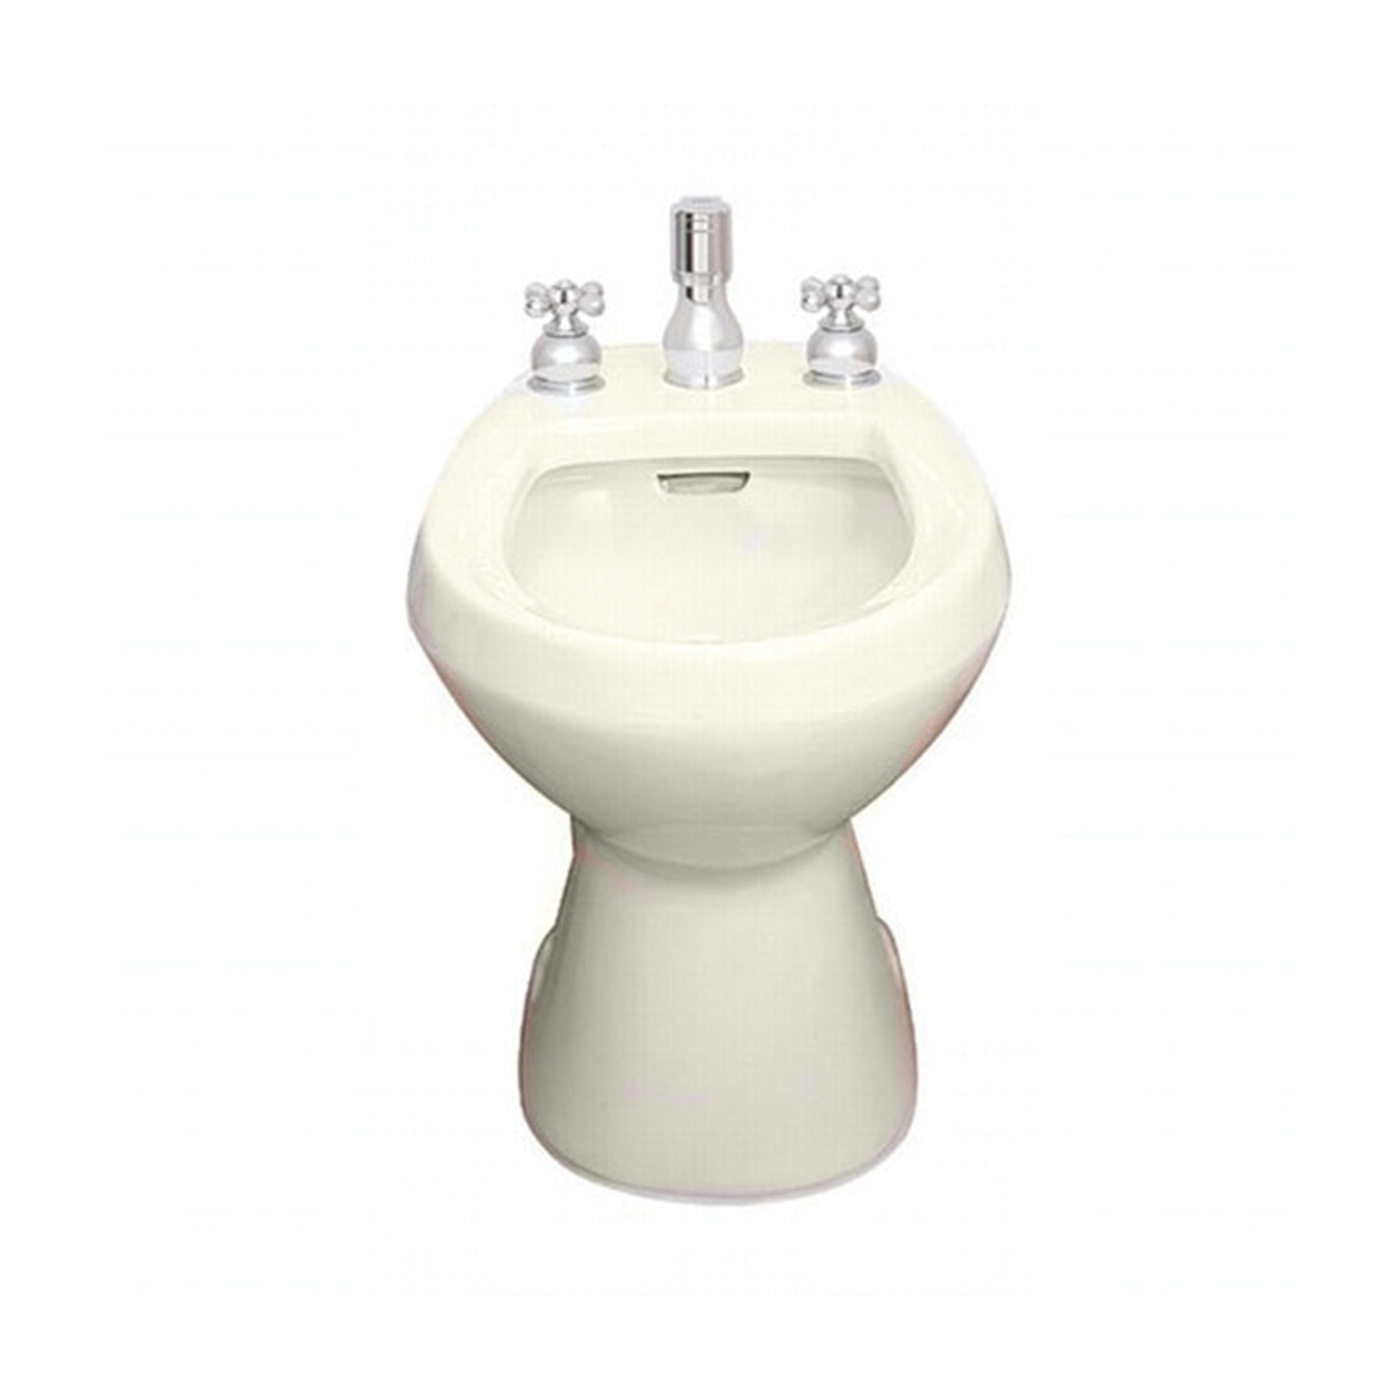 American Standard 5023.100.222 Cadet® Bidet Toilet With (2) Bolt Caps, Elongated Bowl, 14-7/8 in H Rim, 13-1/2 in Rough-In, Linen, Import